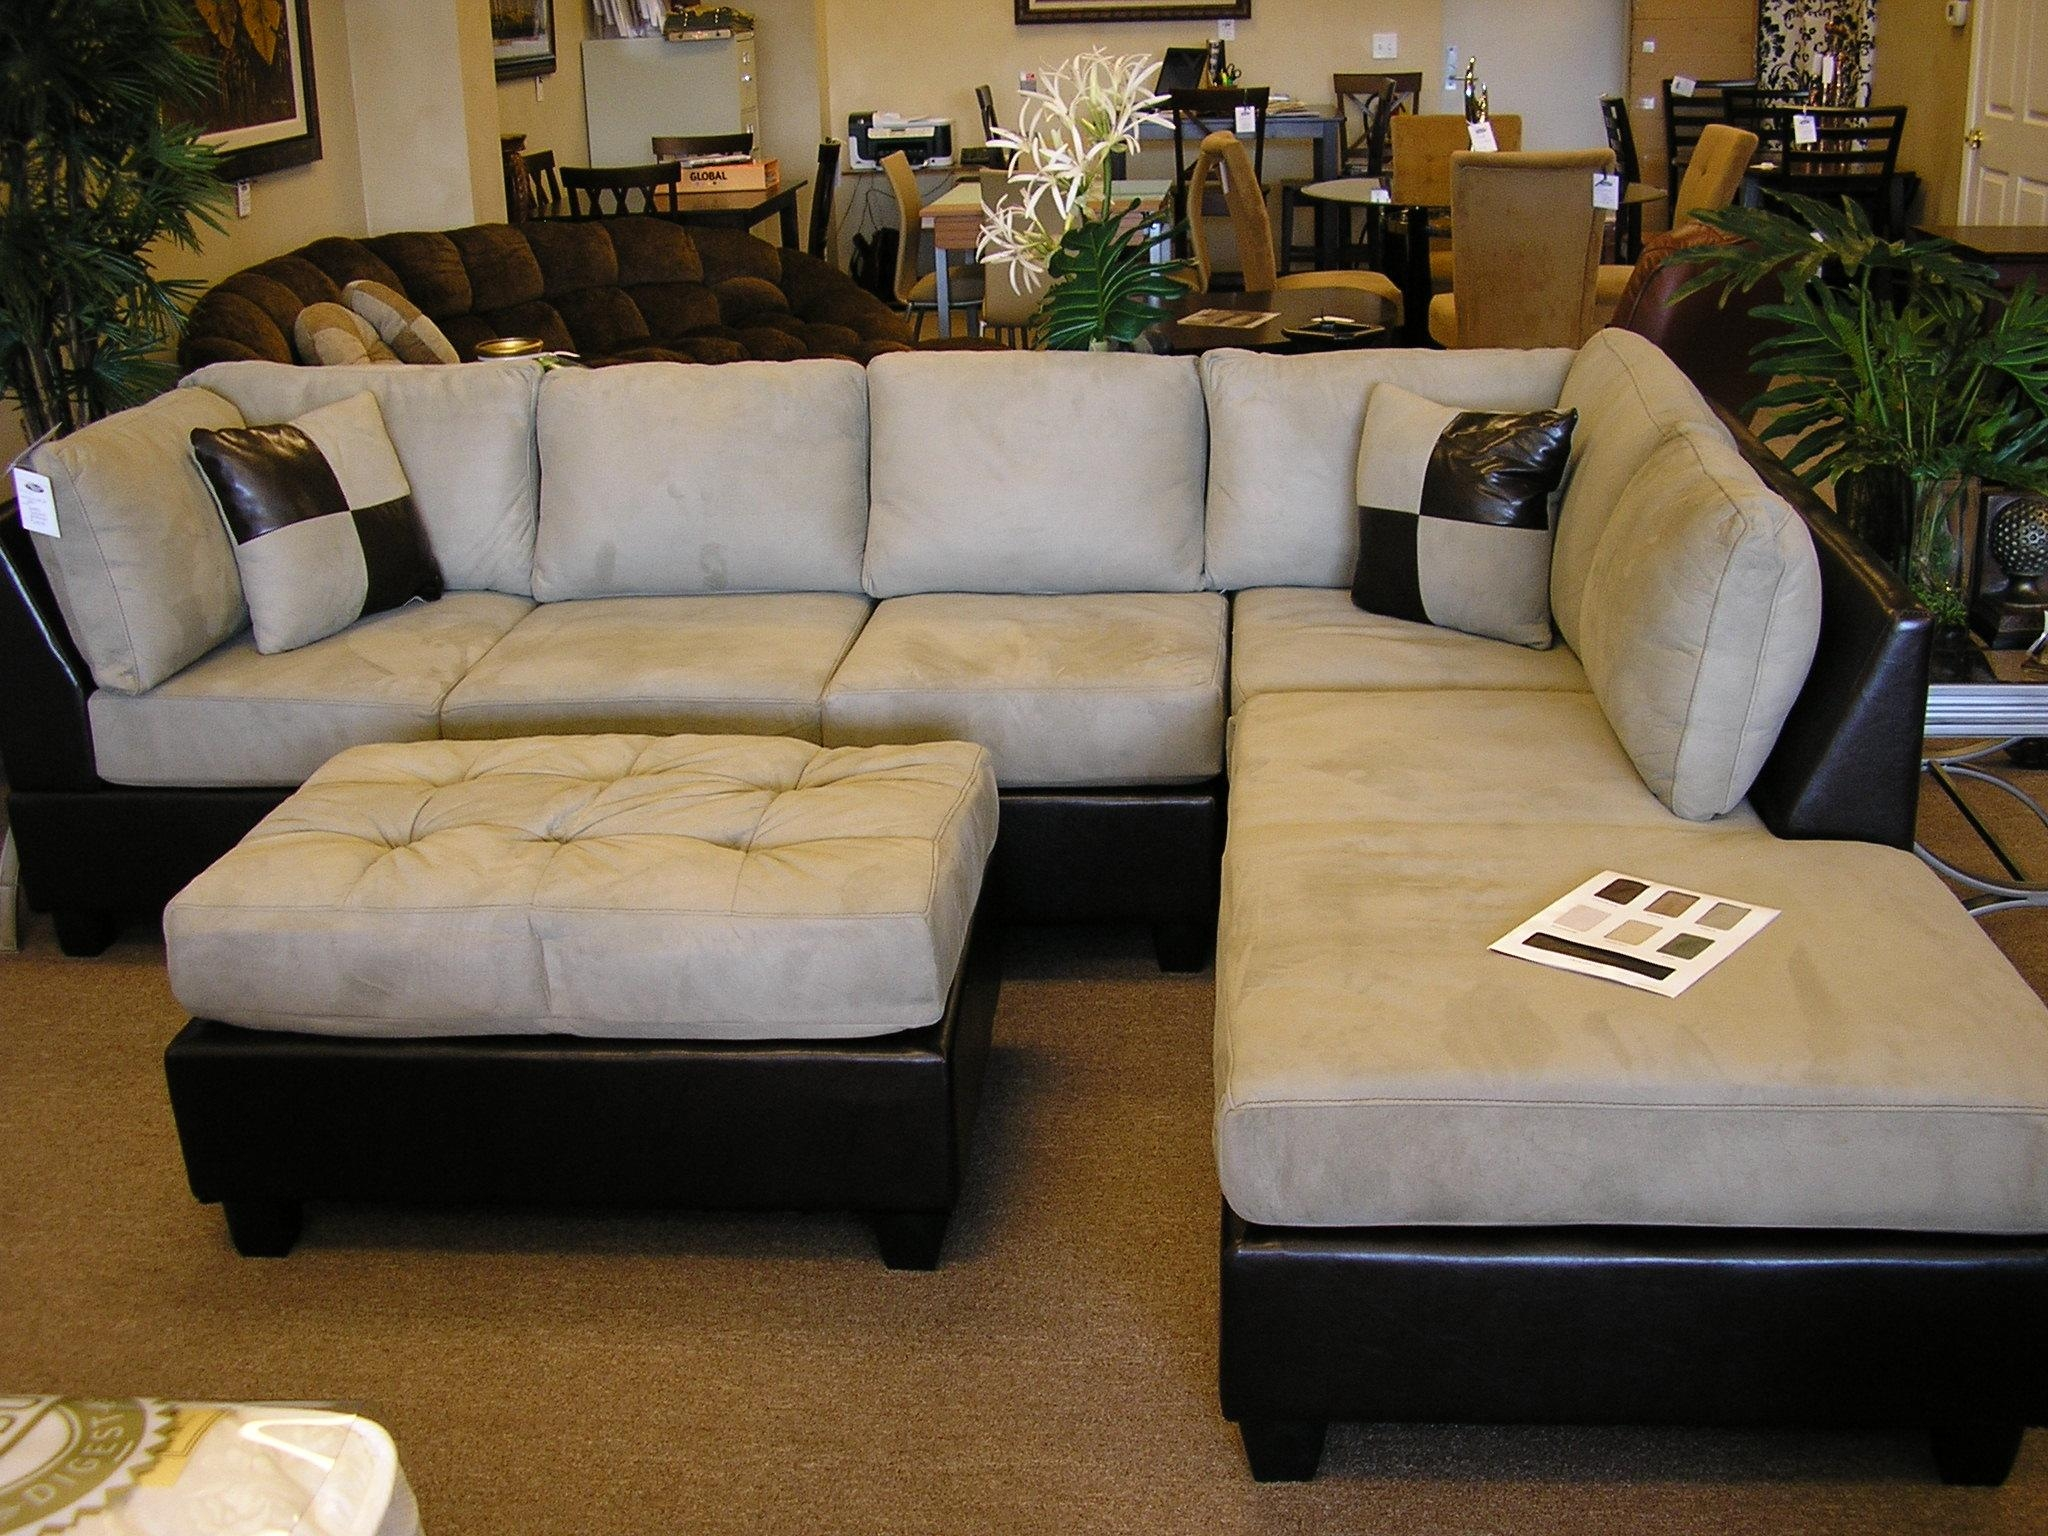 20 Collection of Sectional With Ottoman and Chaise